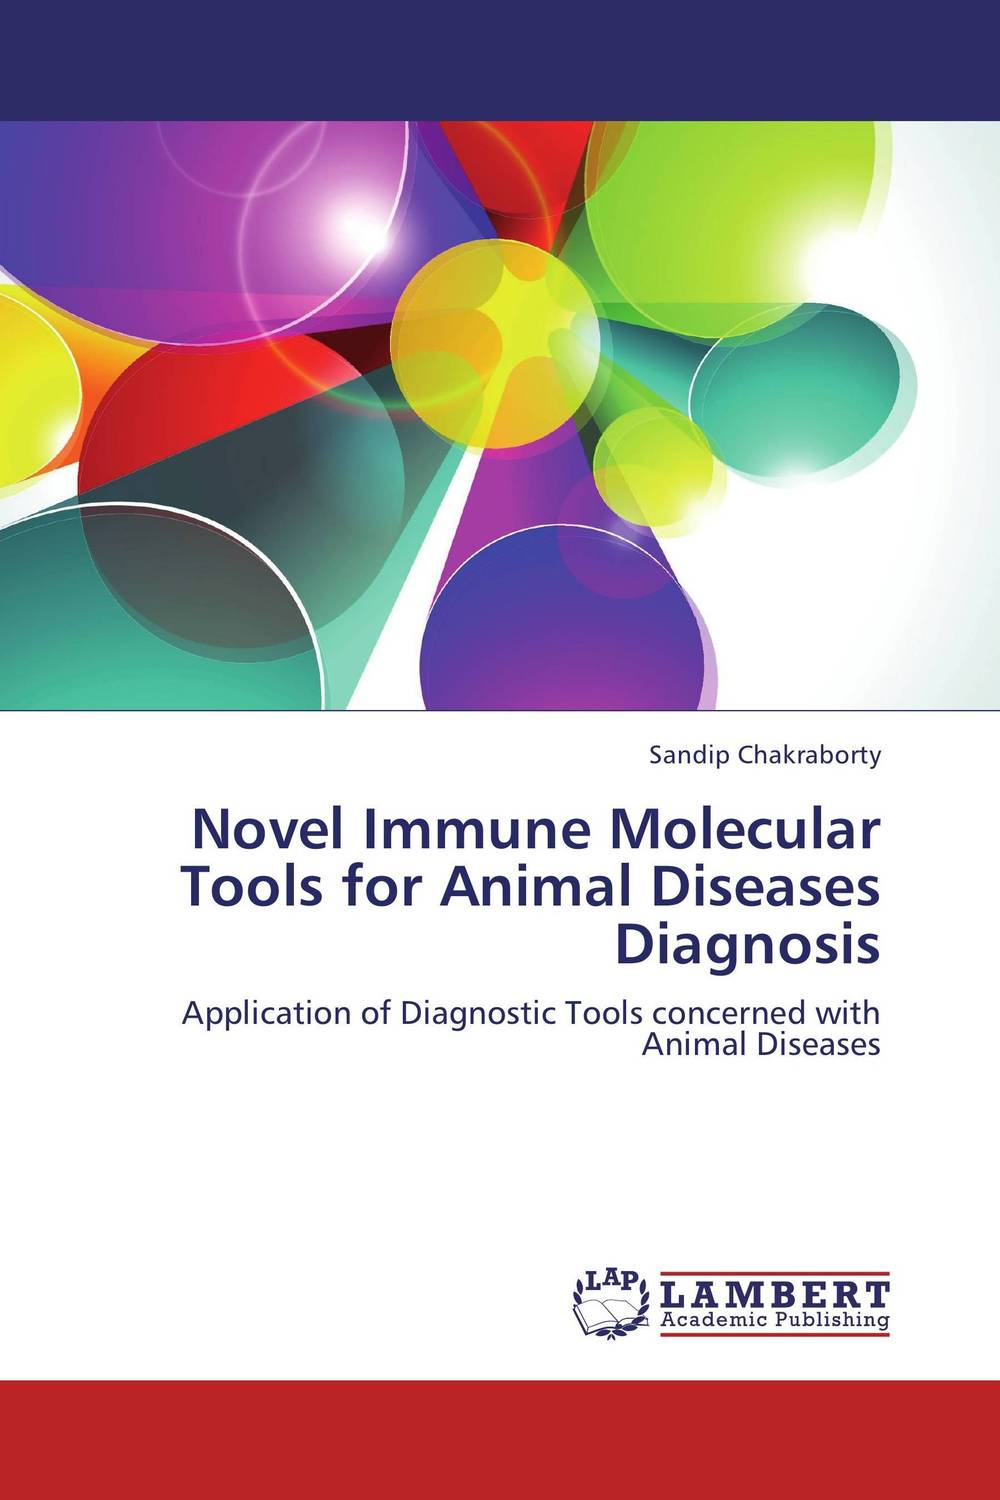 Novel Immune Molecular Tools for Animal Diseases Diagnosis tapan kumar dutta and parimal roychoudhury diagnosis and characterization of bacterial pathogens in animal